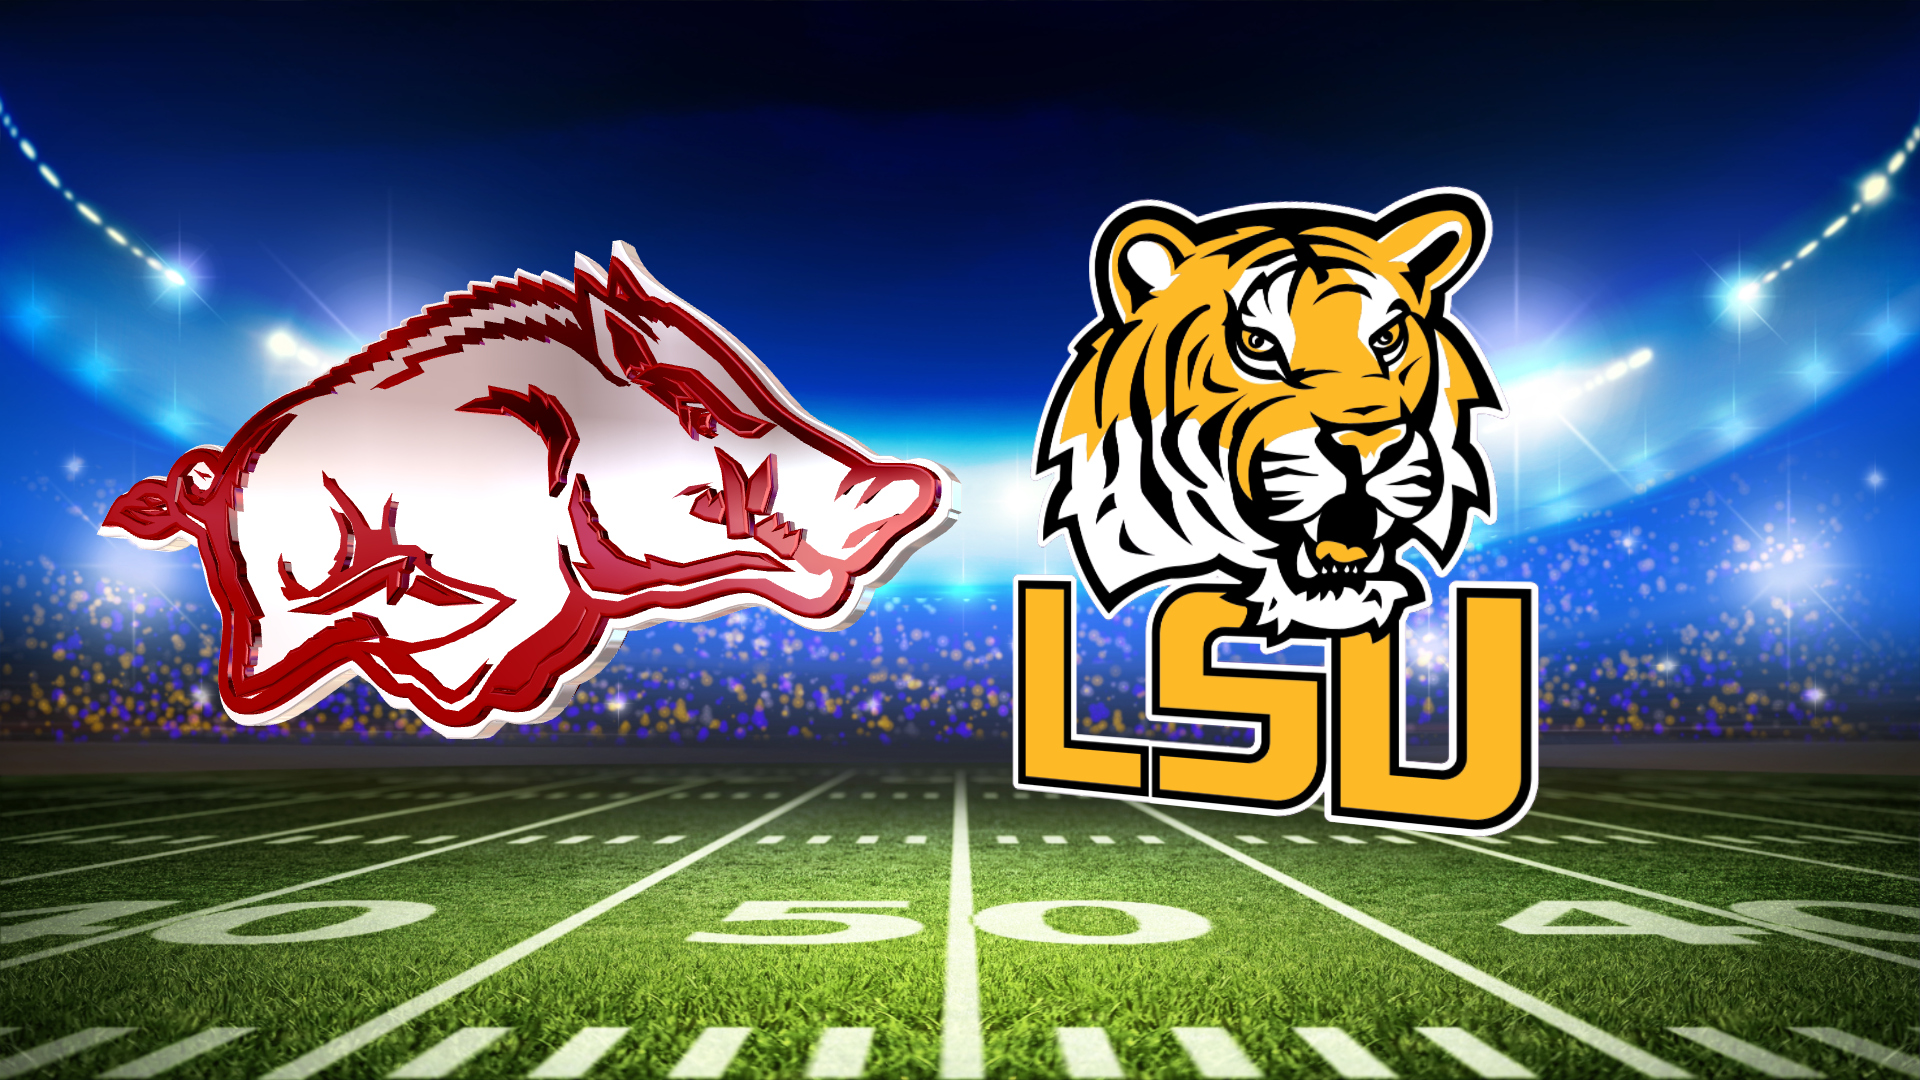 LSU Tigers vs. Texas A&M Aggies - 11/30/19 NCAAF Pick, Odds, and Prediction